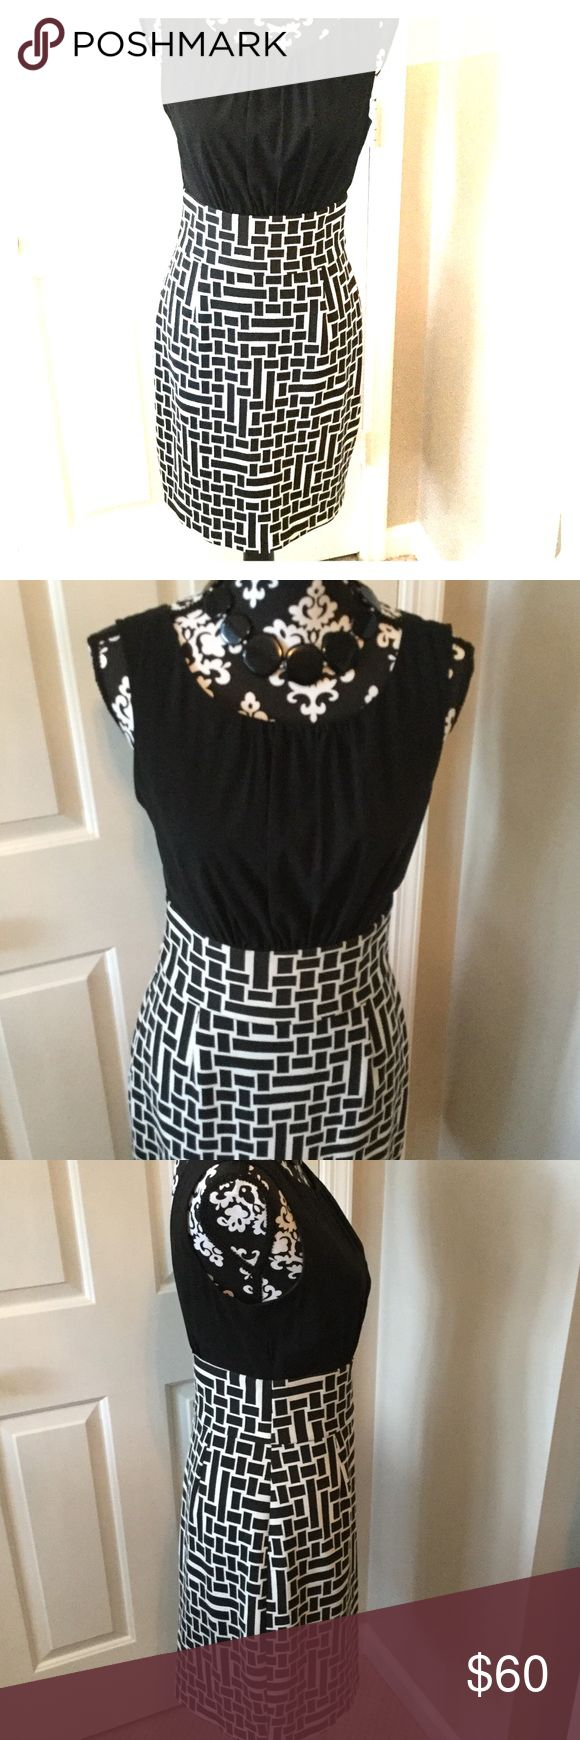 Gorgeous black and cream patterned dress Dress this one up or down.very smart looking dress. Back zip. Beautifully gathered bodice. Trina Turk Dresses